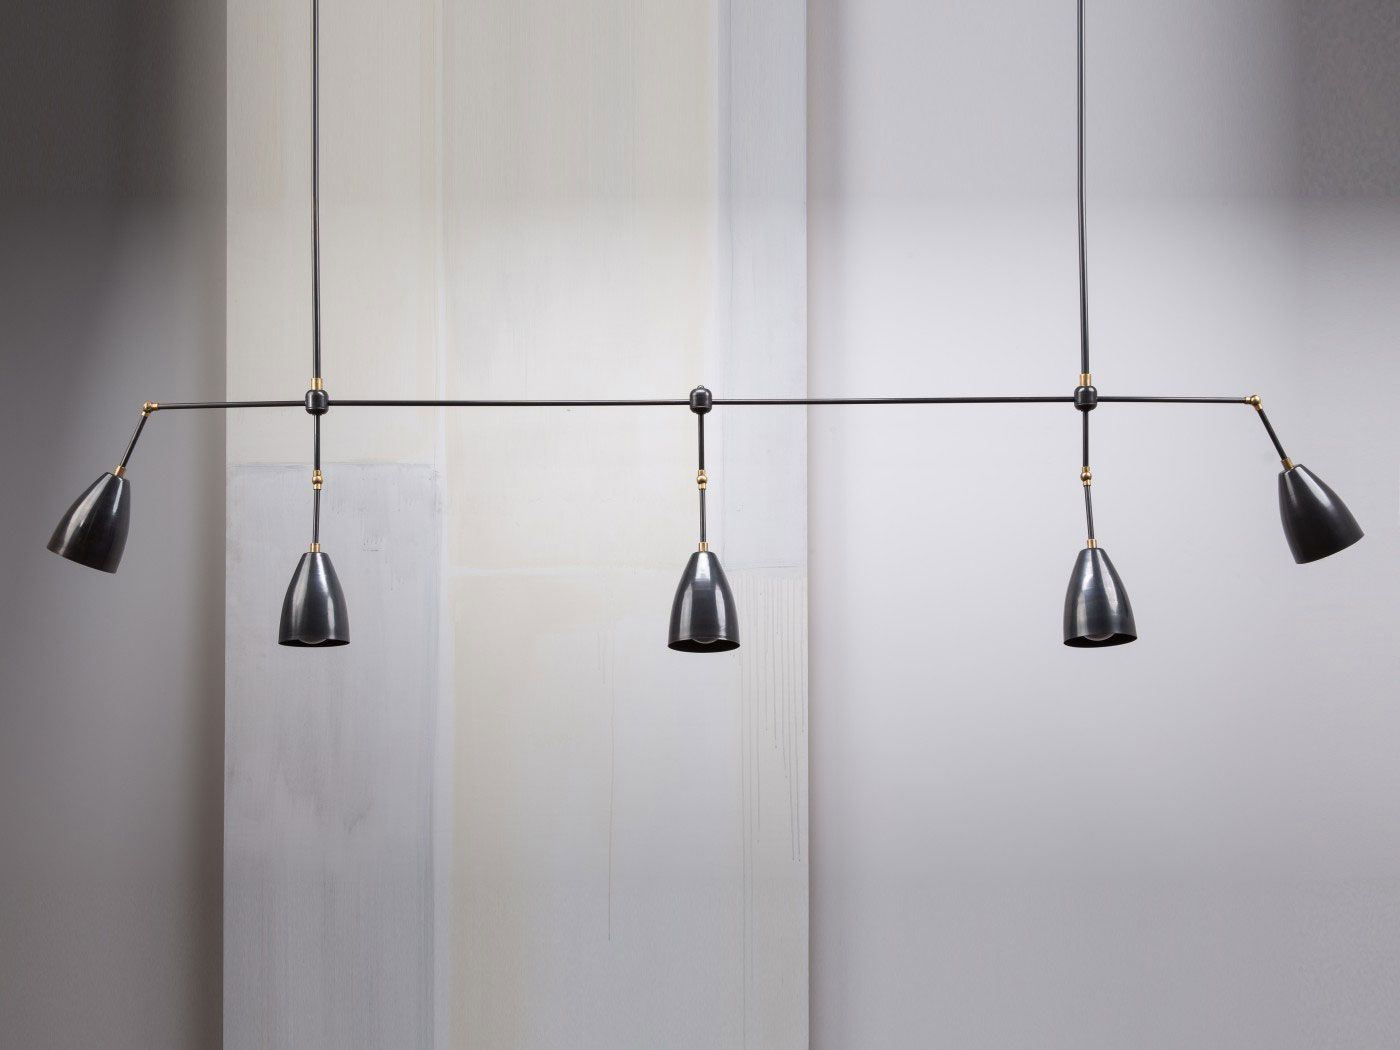 exquisite lighting. Exquisite Lighting By Apparatus Studio In New York | Yellowtrace. C